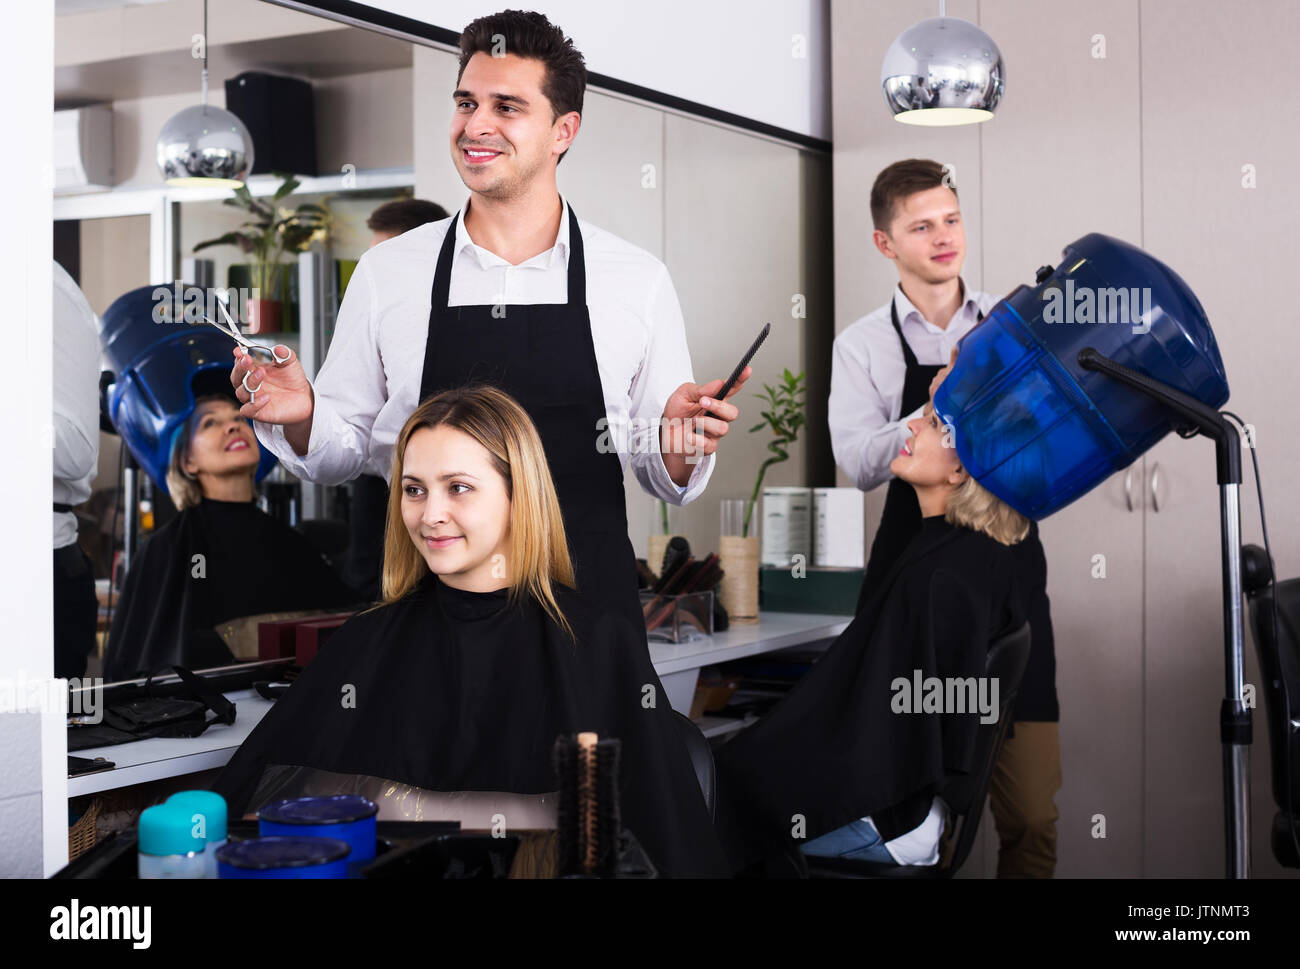 professional hairstylist cuts hair of blonde girl at the beauty salon stock image - Professional Hairstylist